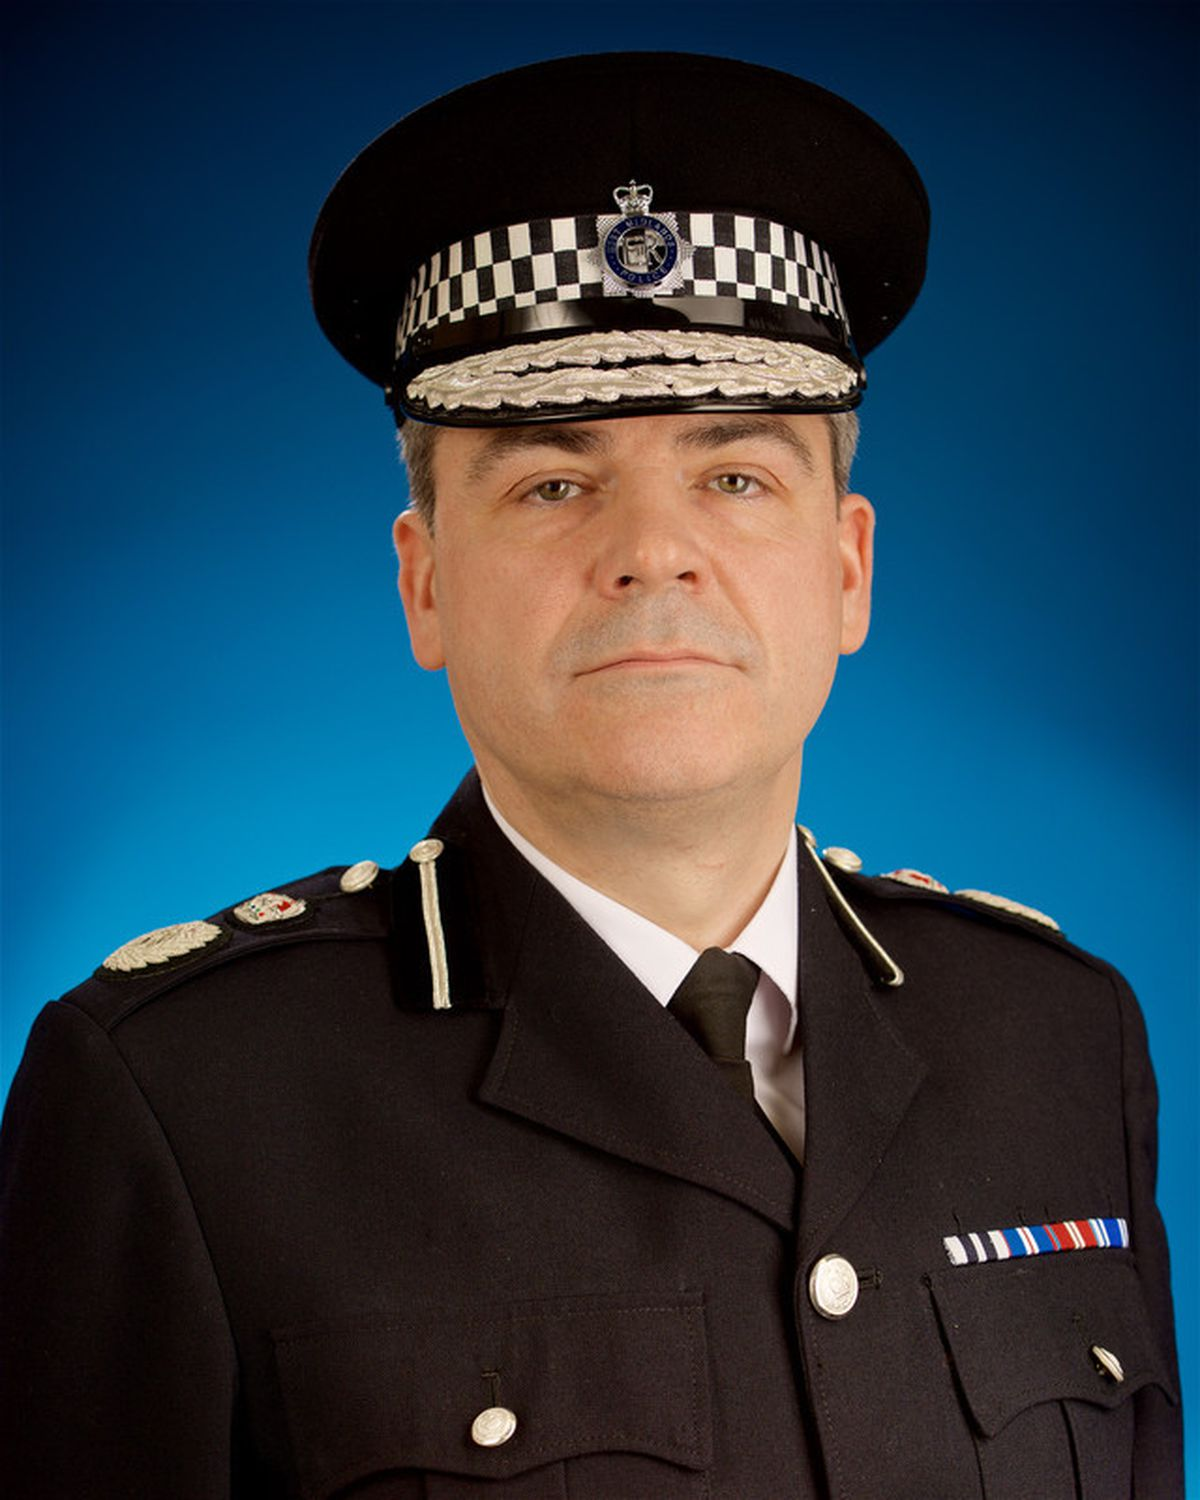 West Midlands Police Chief Constable Dave Thompson